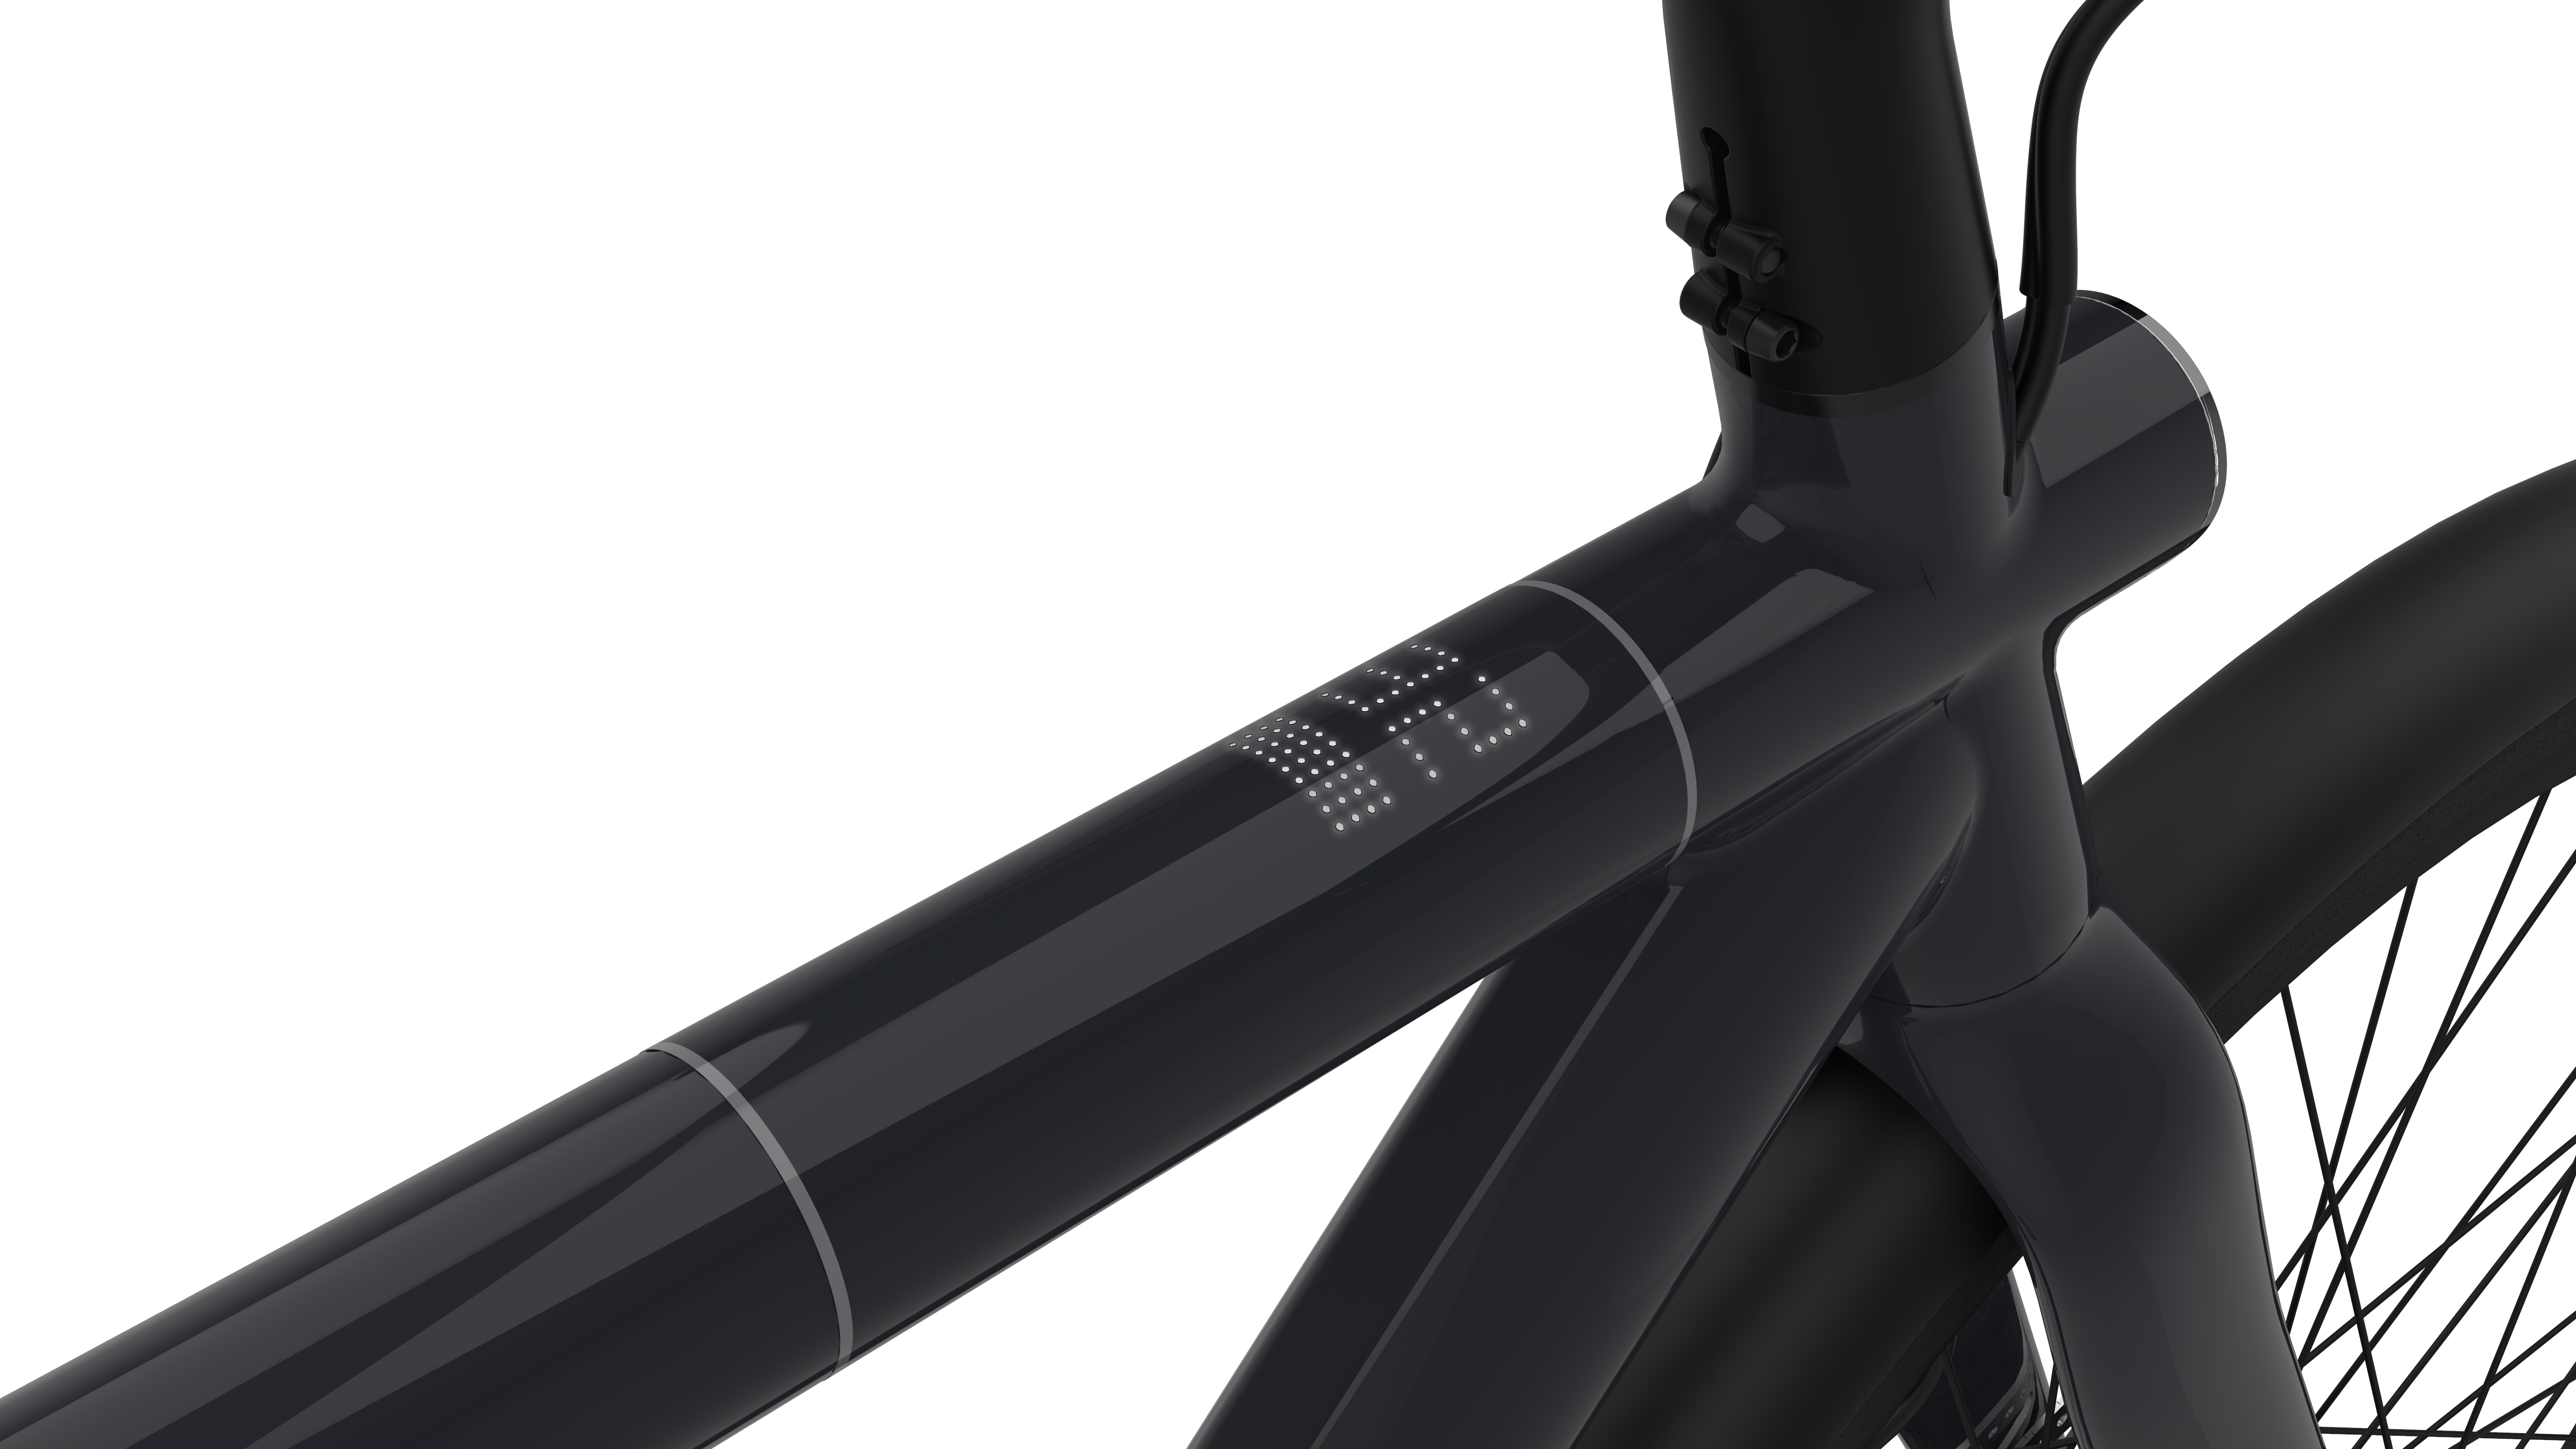 VanMoof's new theft-defying Electrified bikes are serious